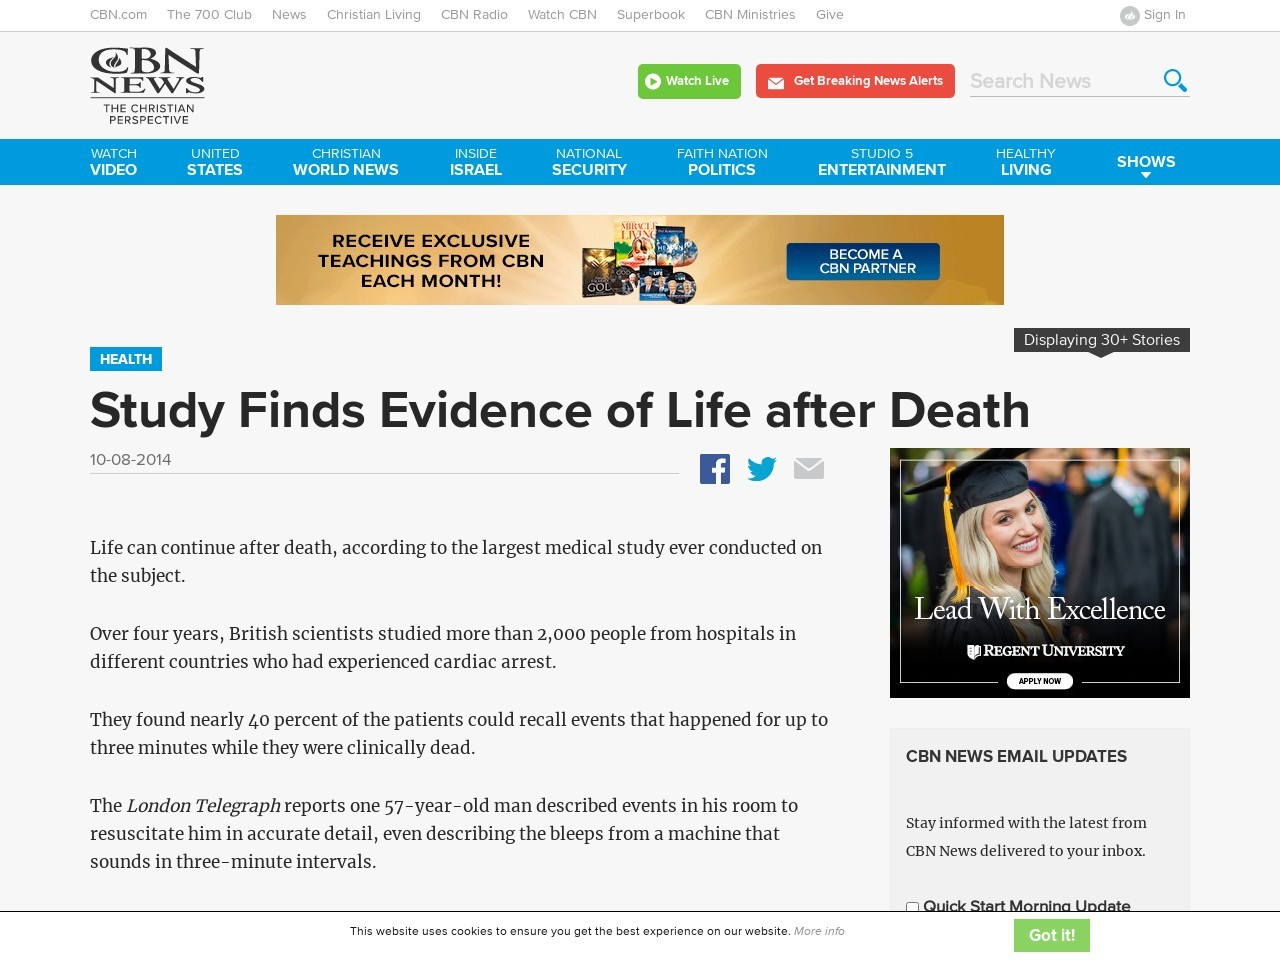 Study Finds Evidence of Life after Death